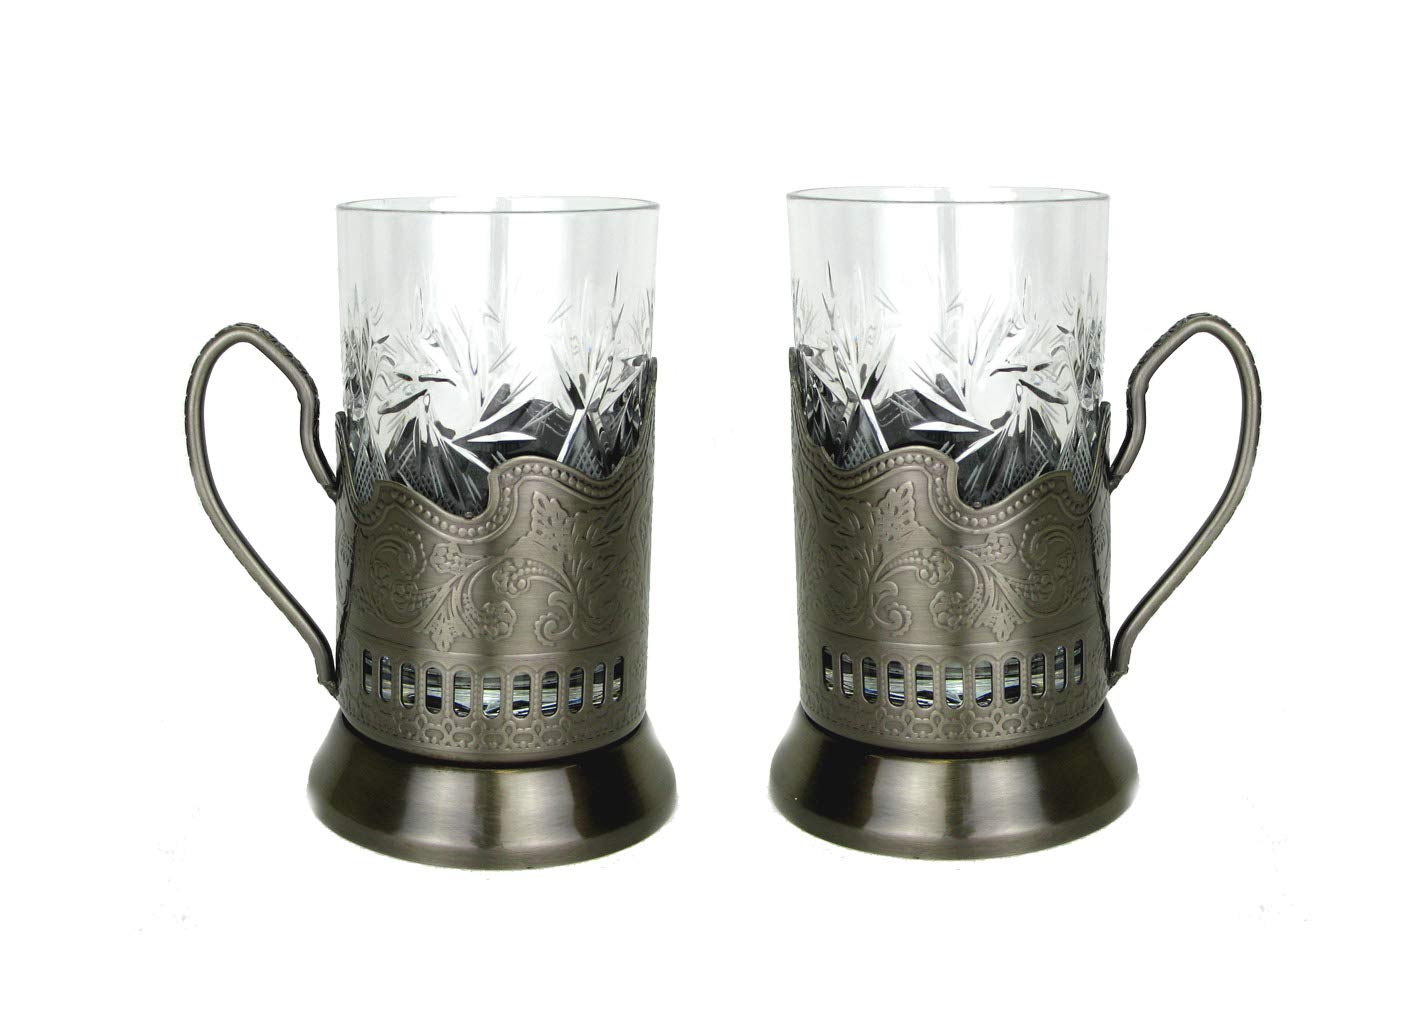 Combination of 2 Russian CUT Crystal Drinking Tea Glasses W/metal Glass Holders Podstakannik for Hot or Cold Liquids by Belarus